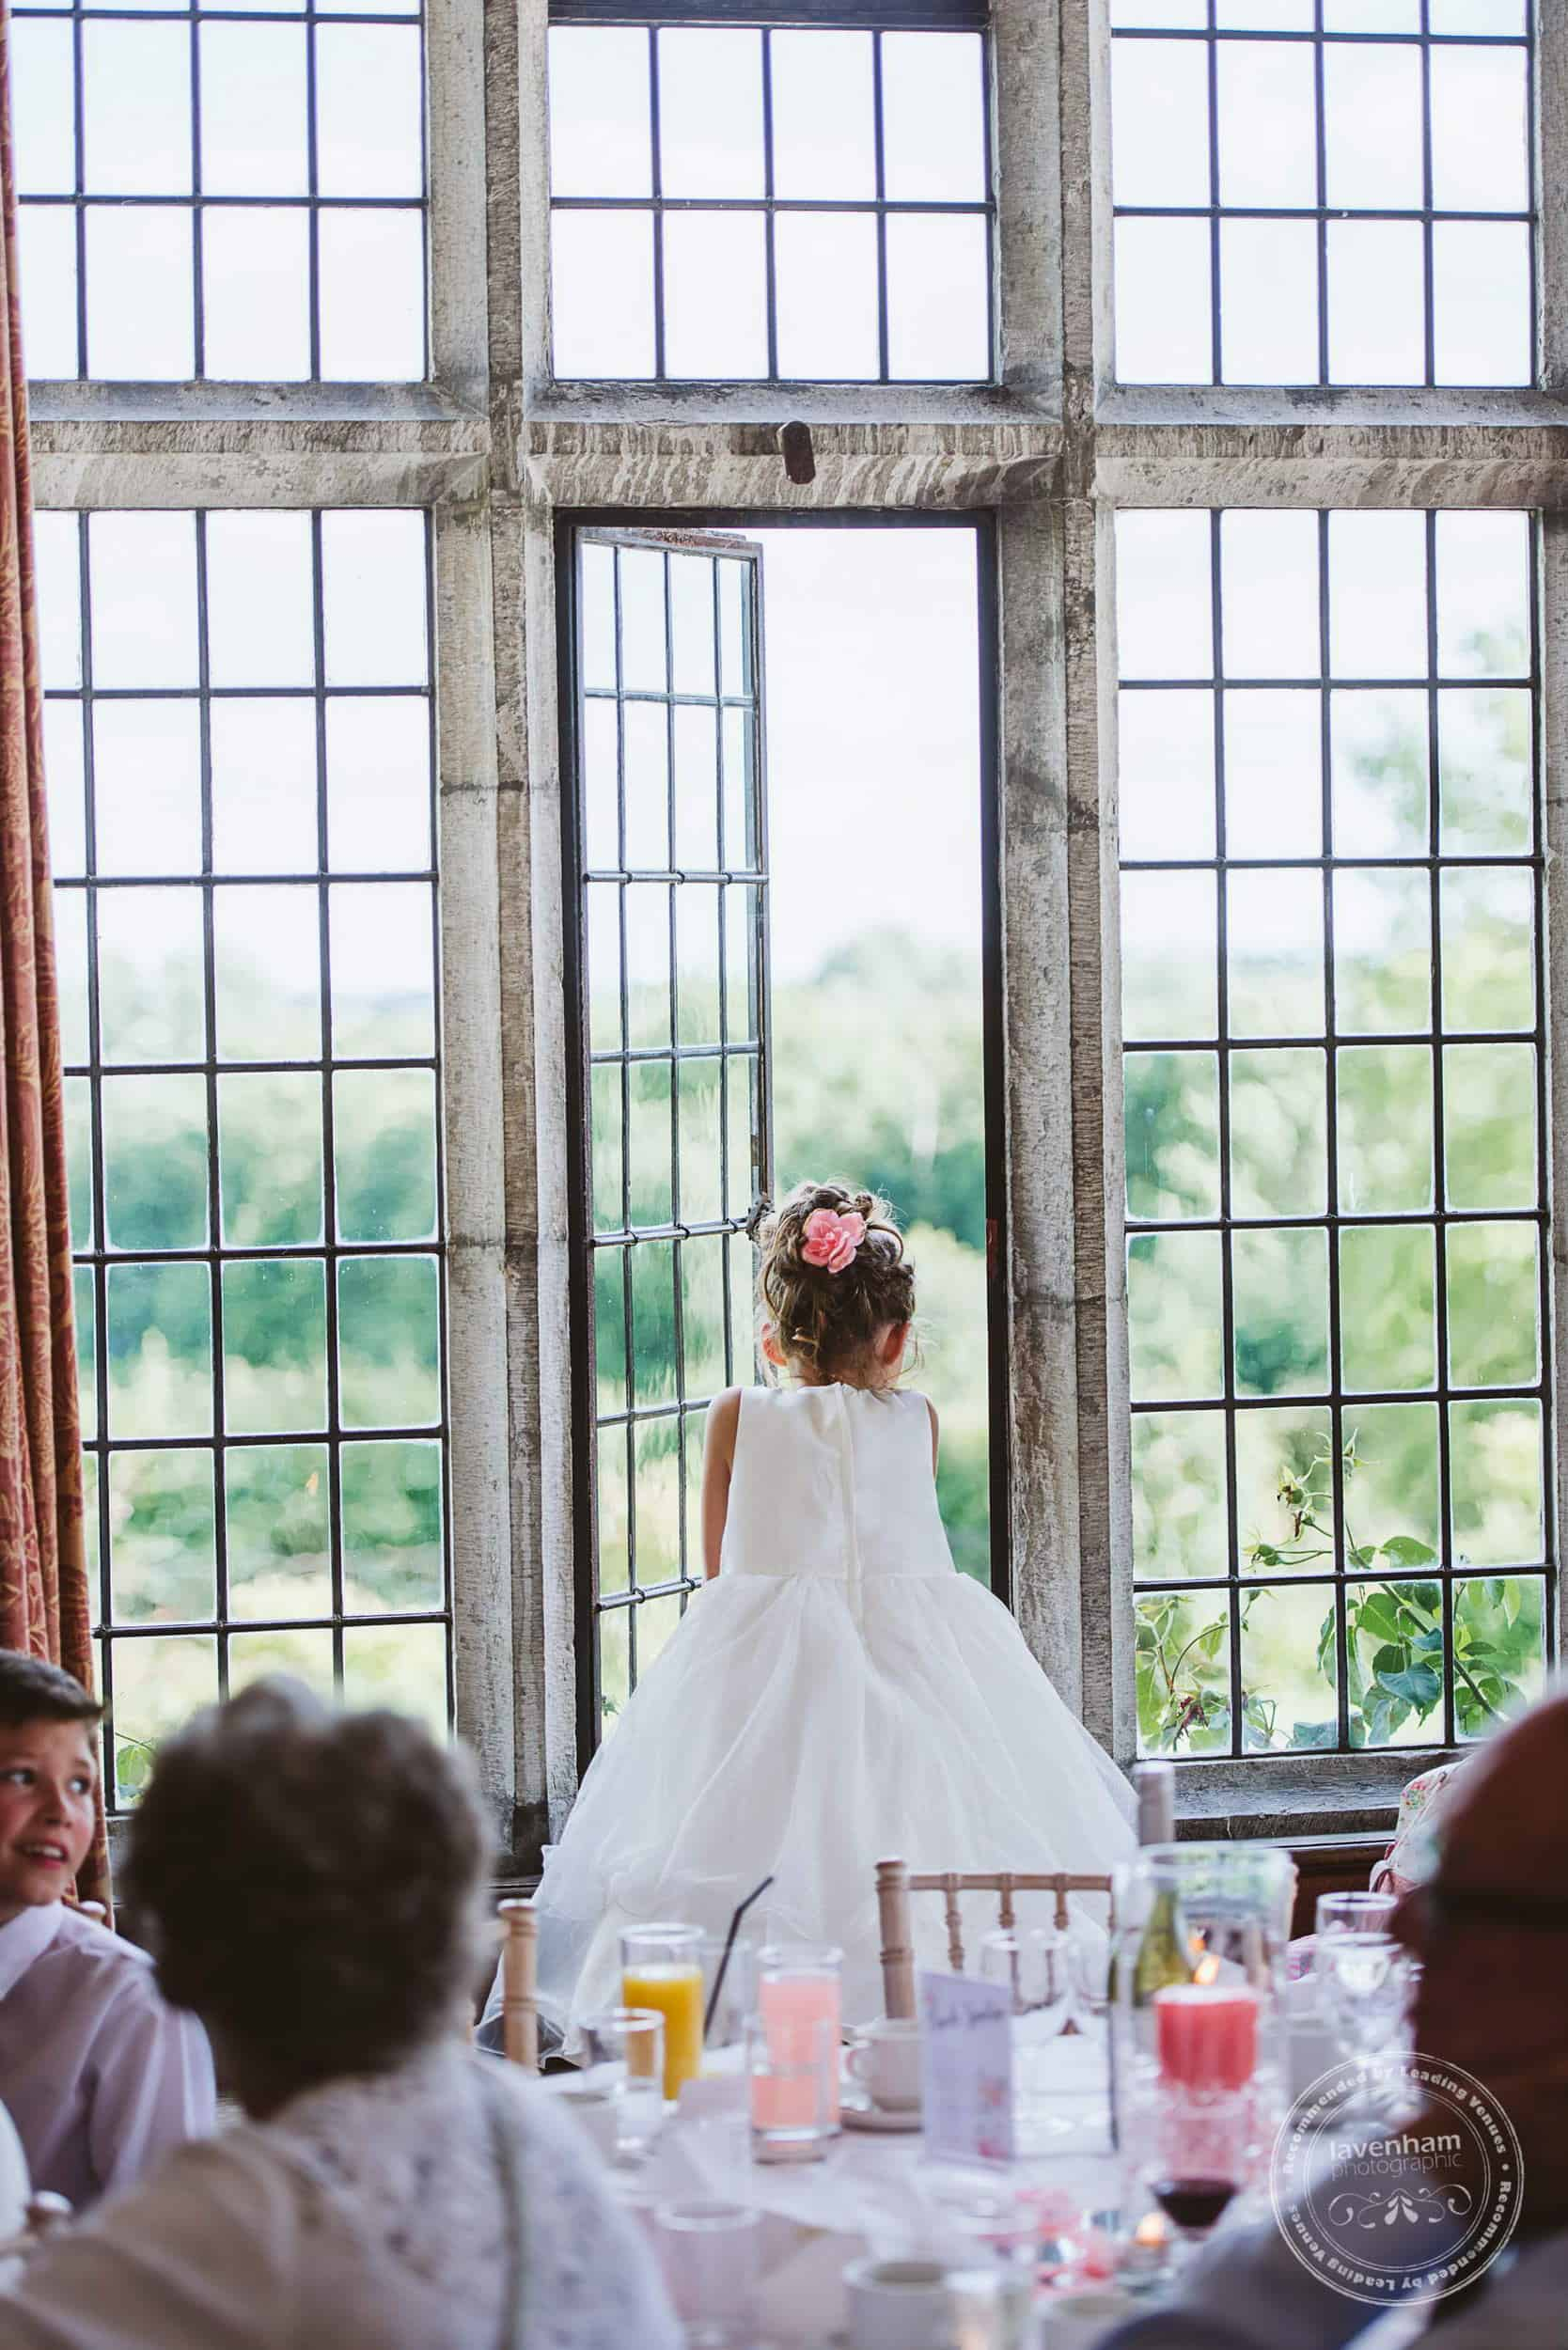 140717 Layer Marney Wedding Photography by Lavenham Photographic 104